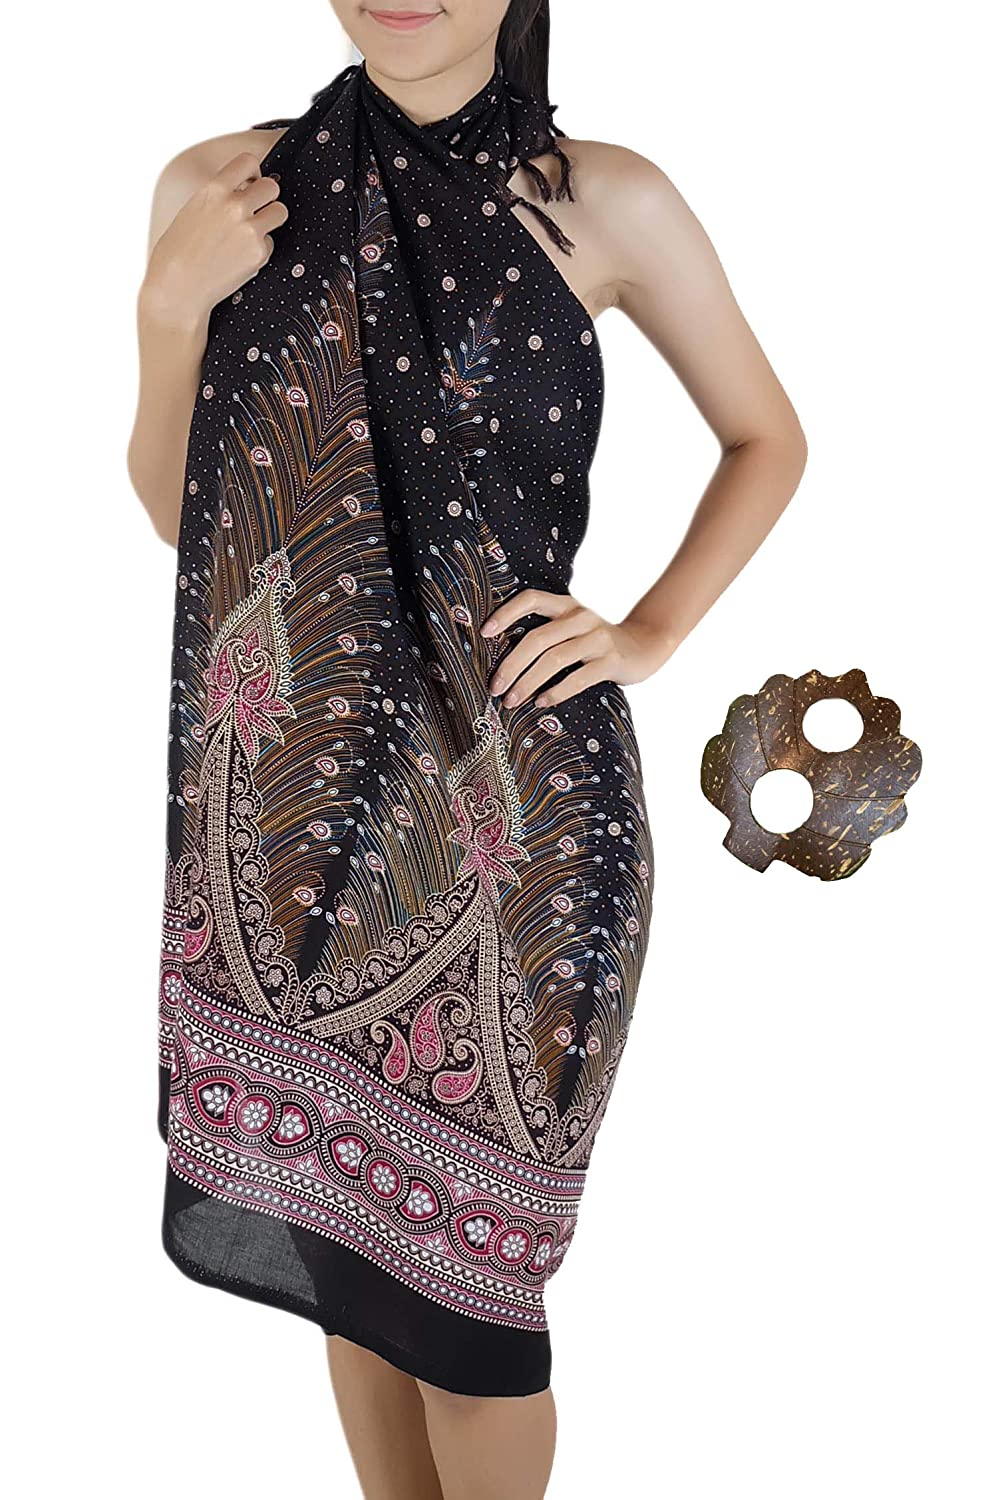 9660ac8678 Iyara Peacock Feathers Midnight Charming Scraf Style Women Pareo Sarong  with Coconut Shell Brooch (Black) at Amazon Women's Clothing store: